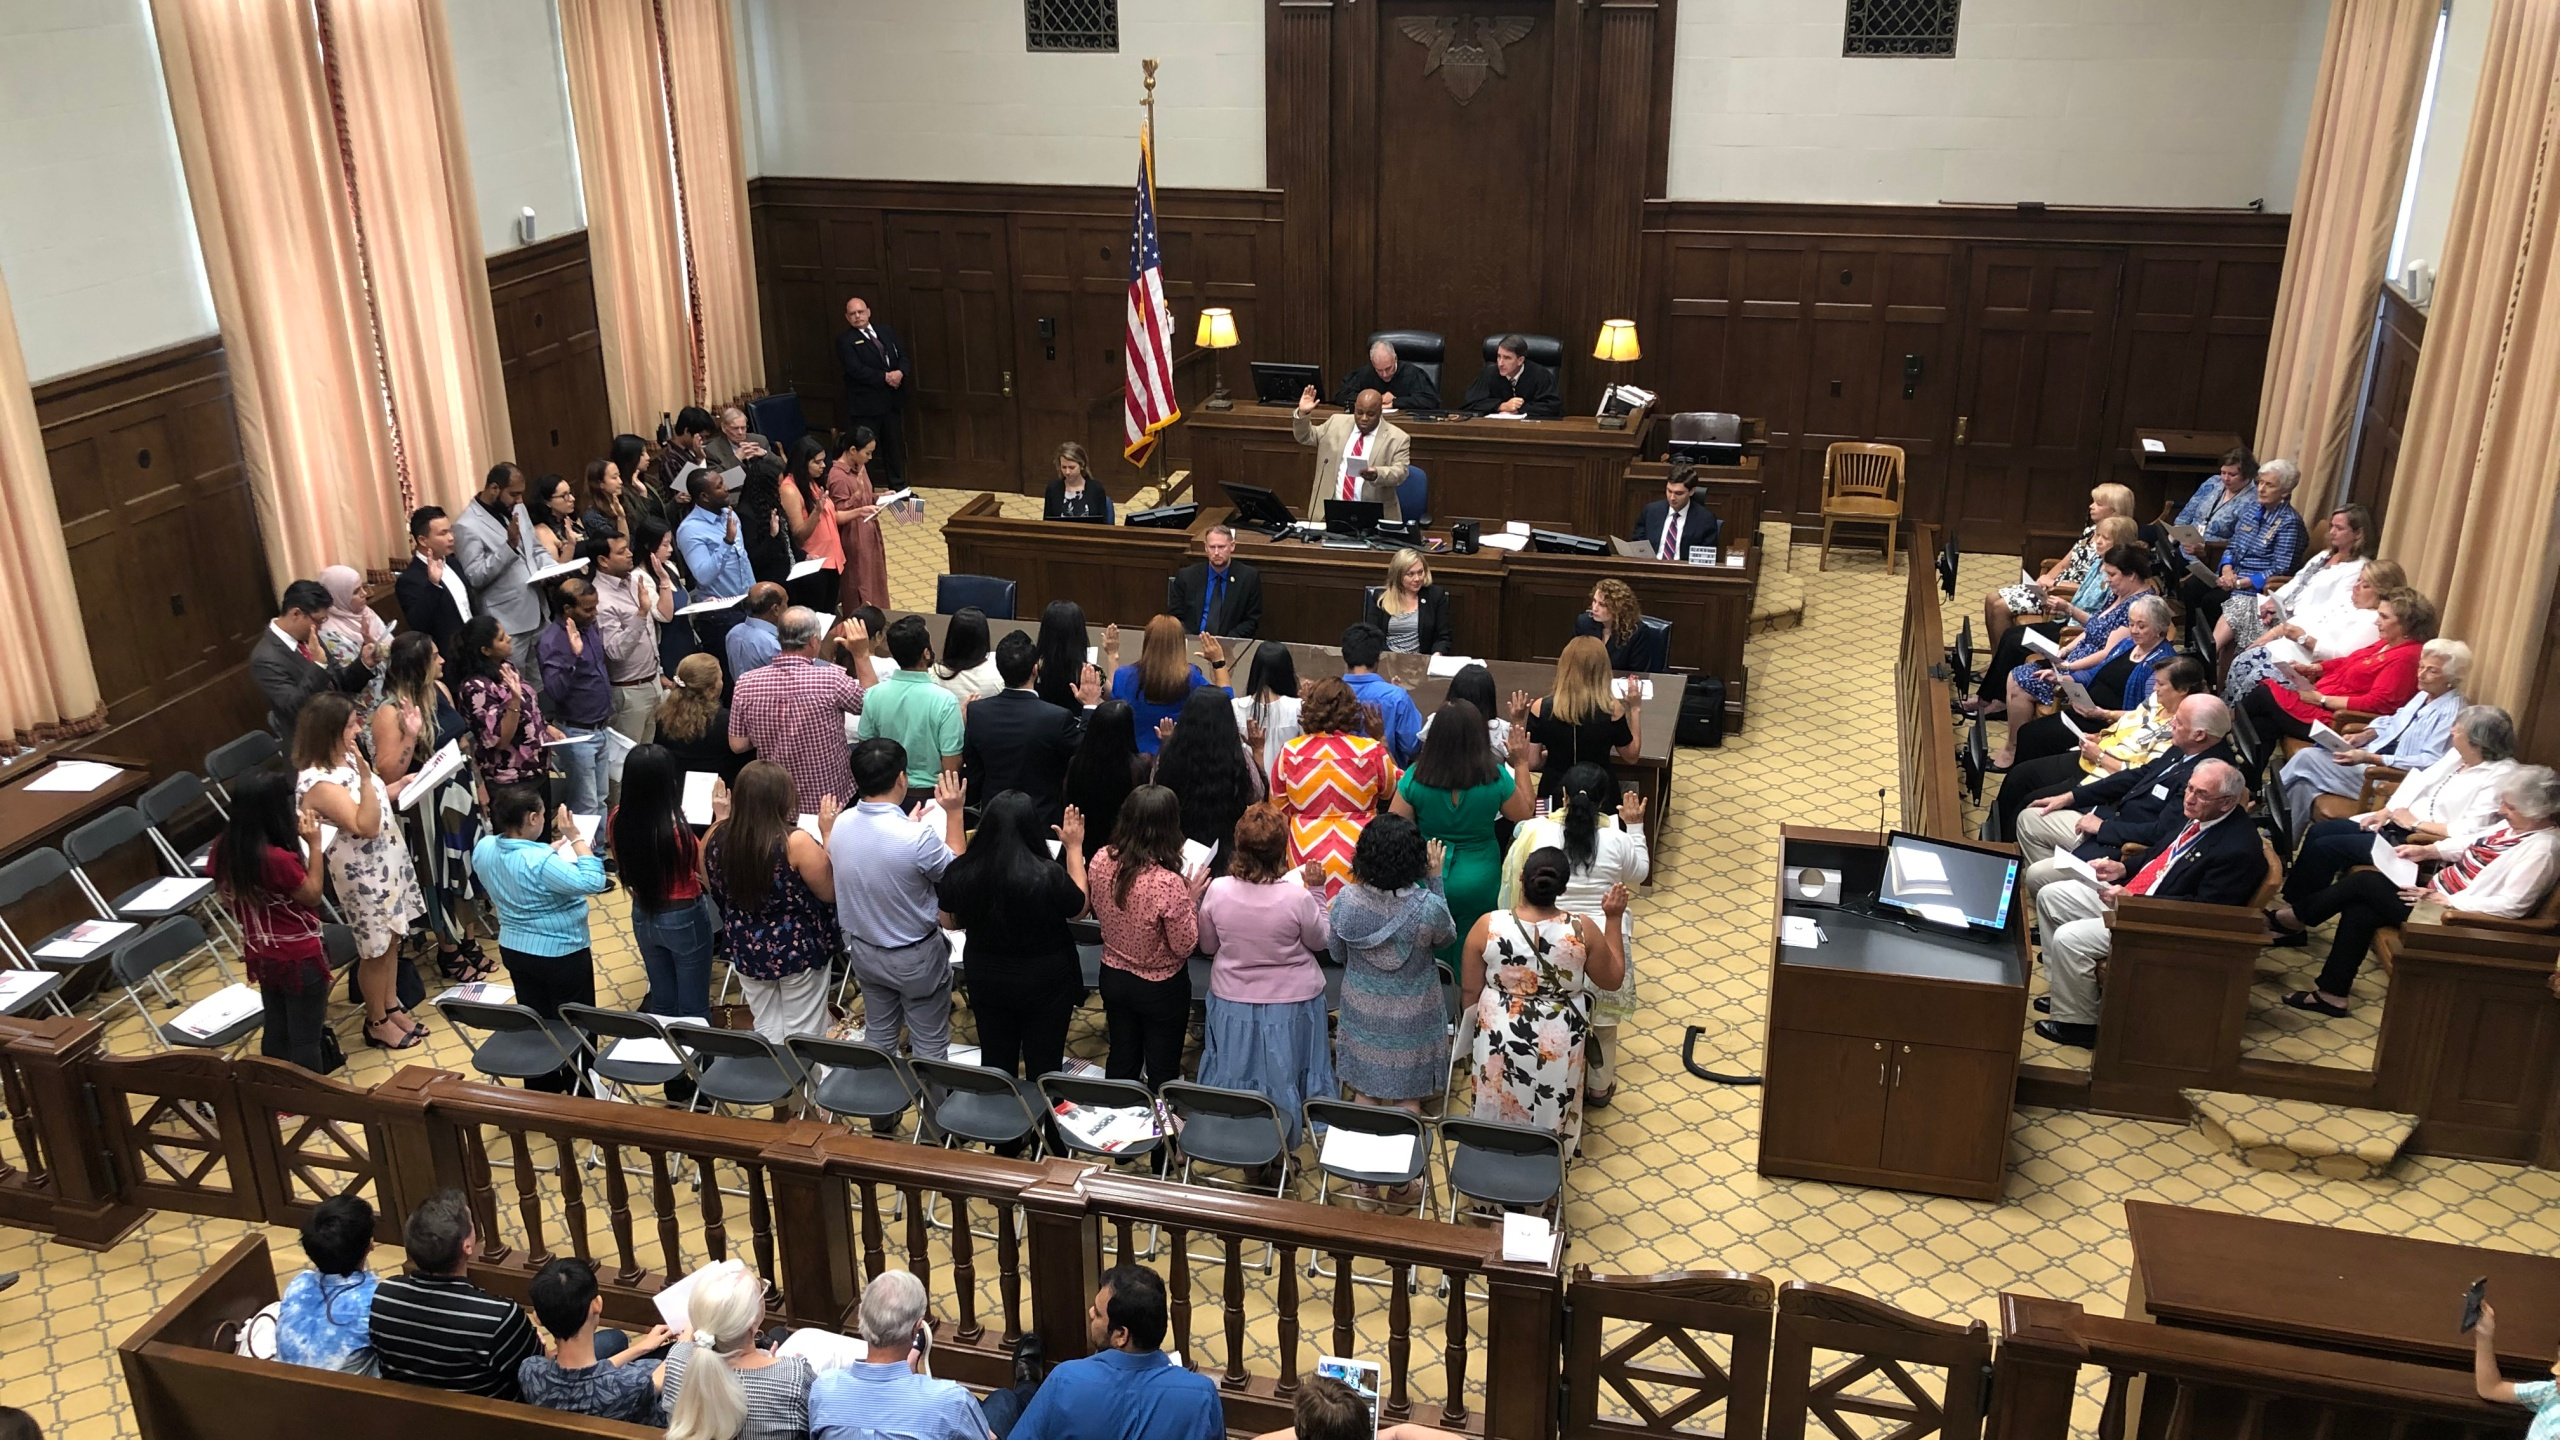 49 people from 23 countries became naturalized citizens in